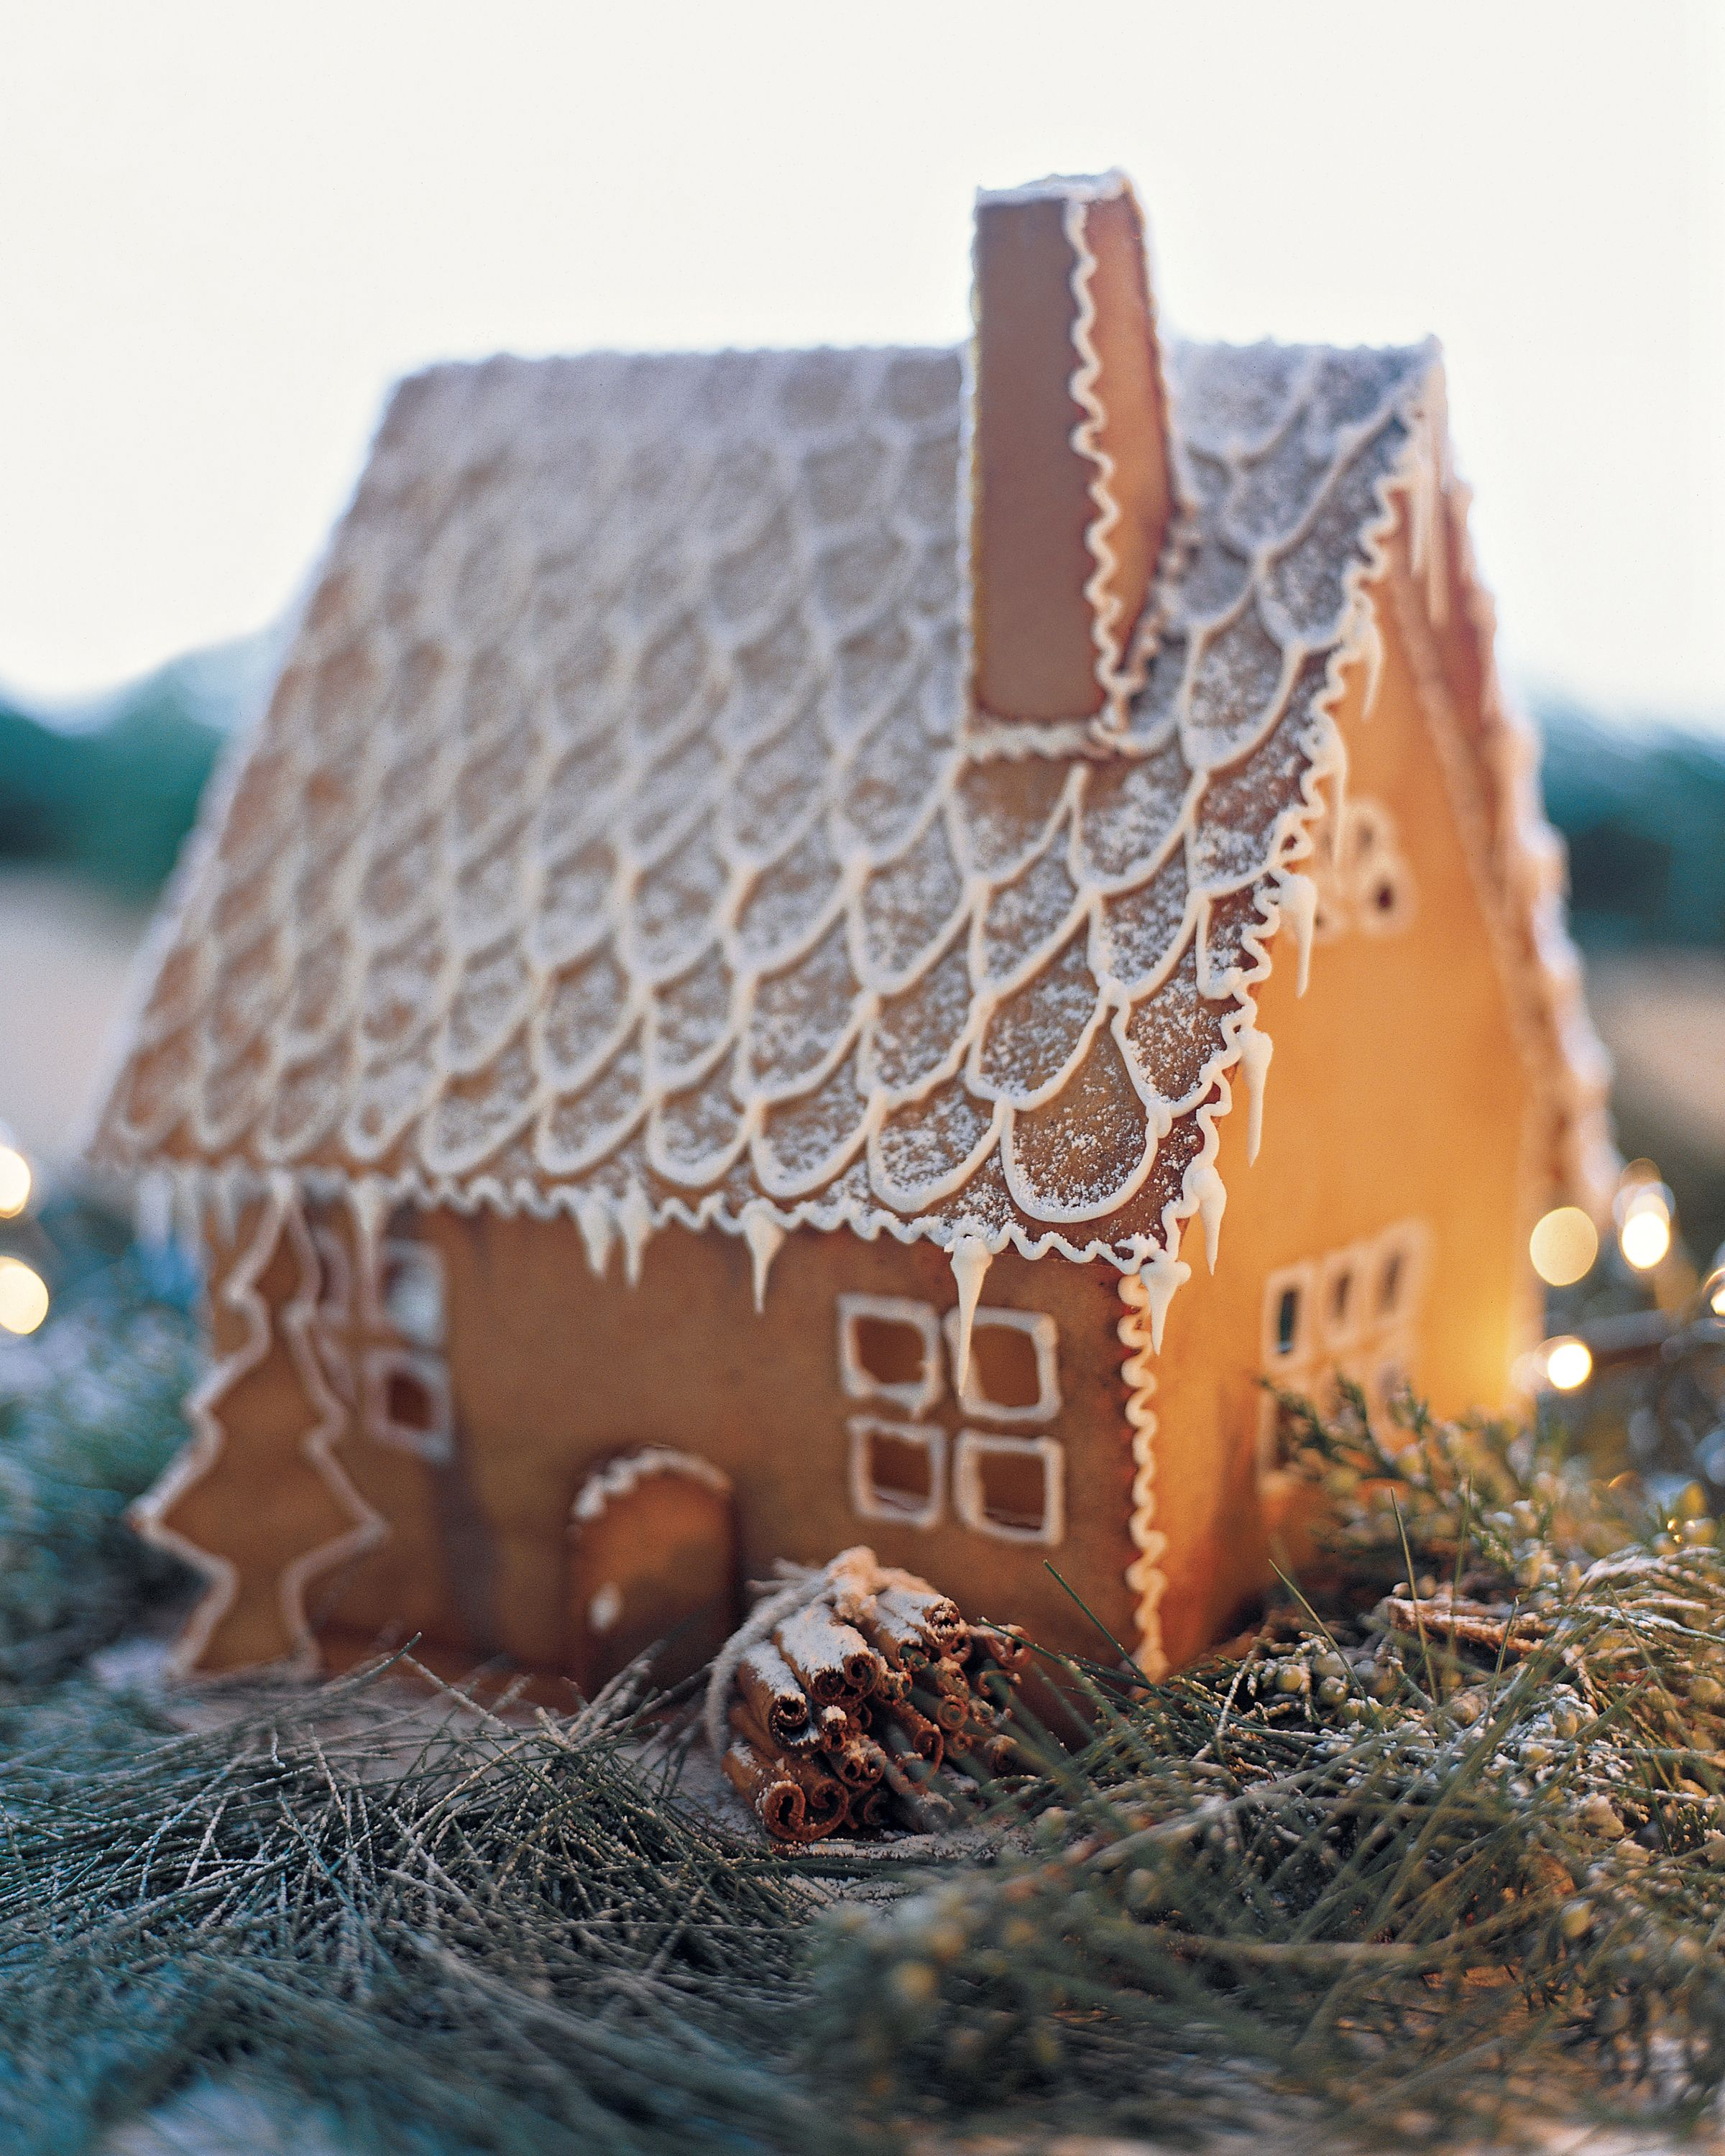 Christmas Templates #gingerbreadhousetemplate